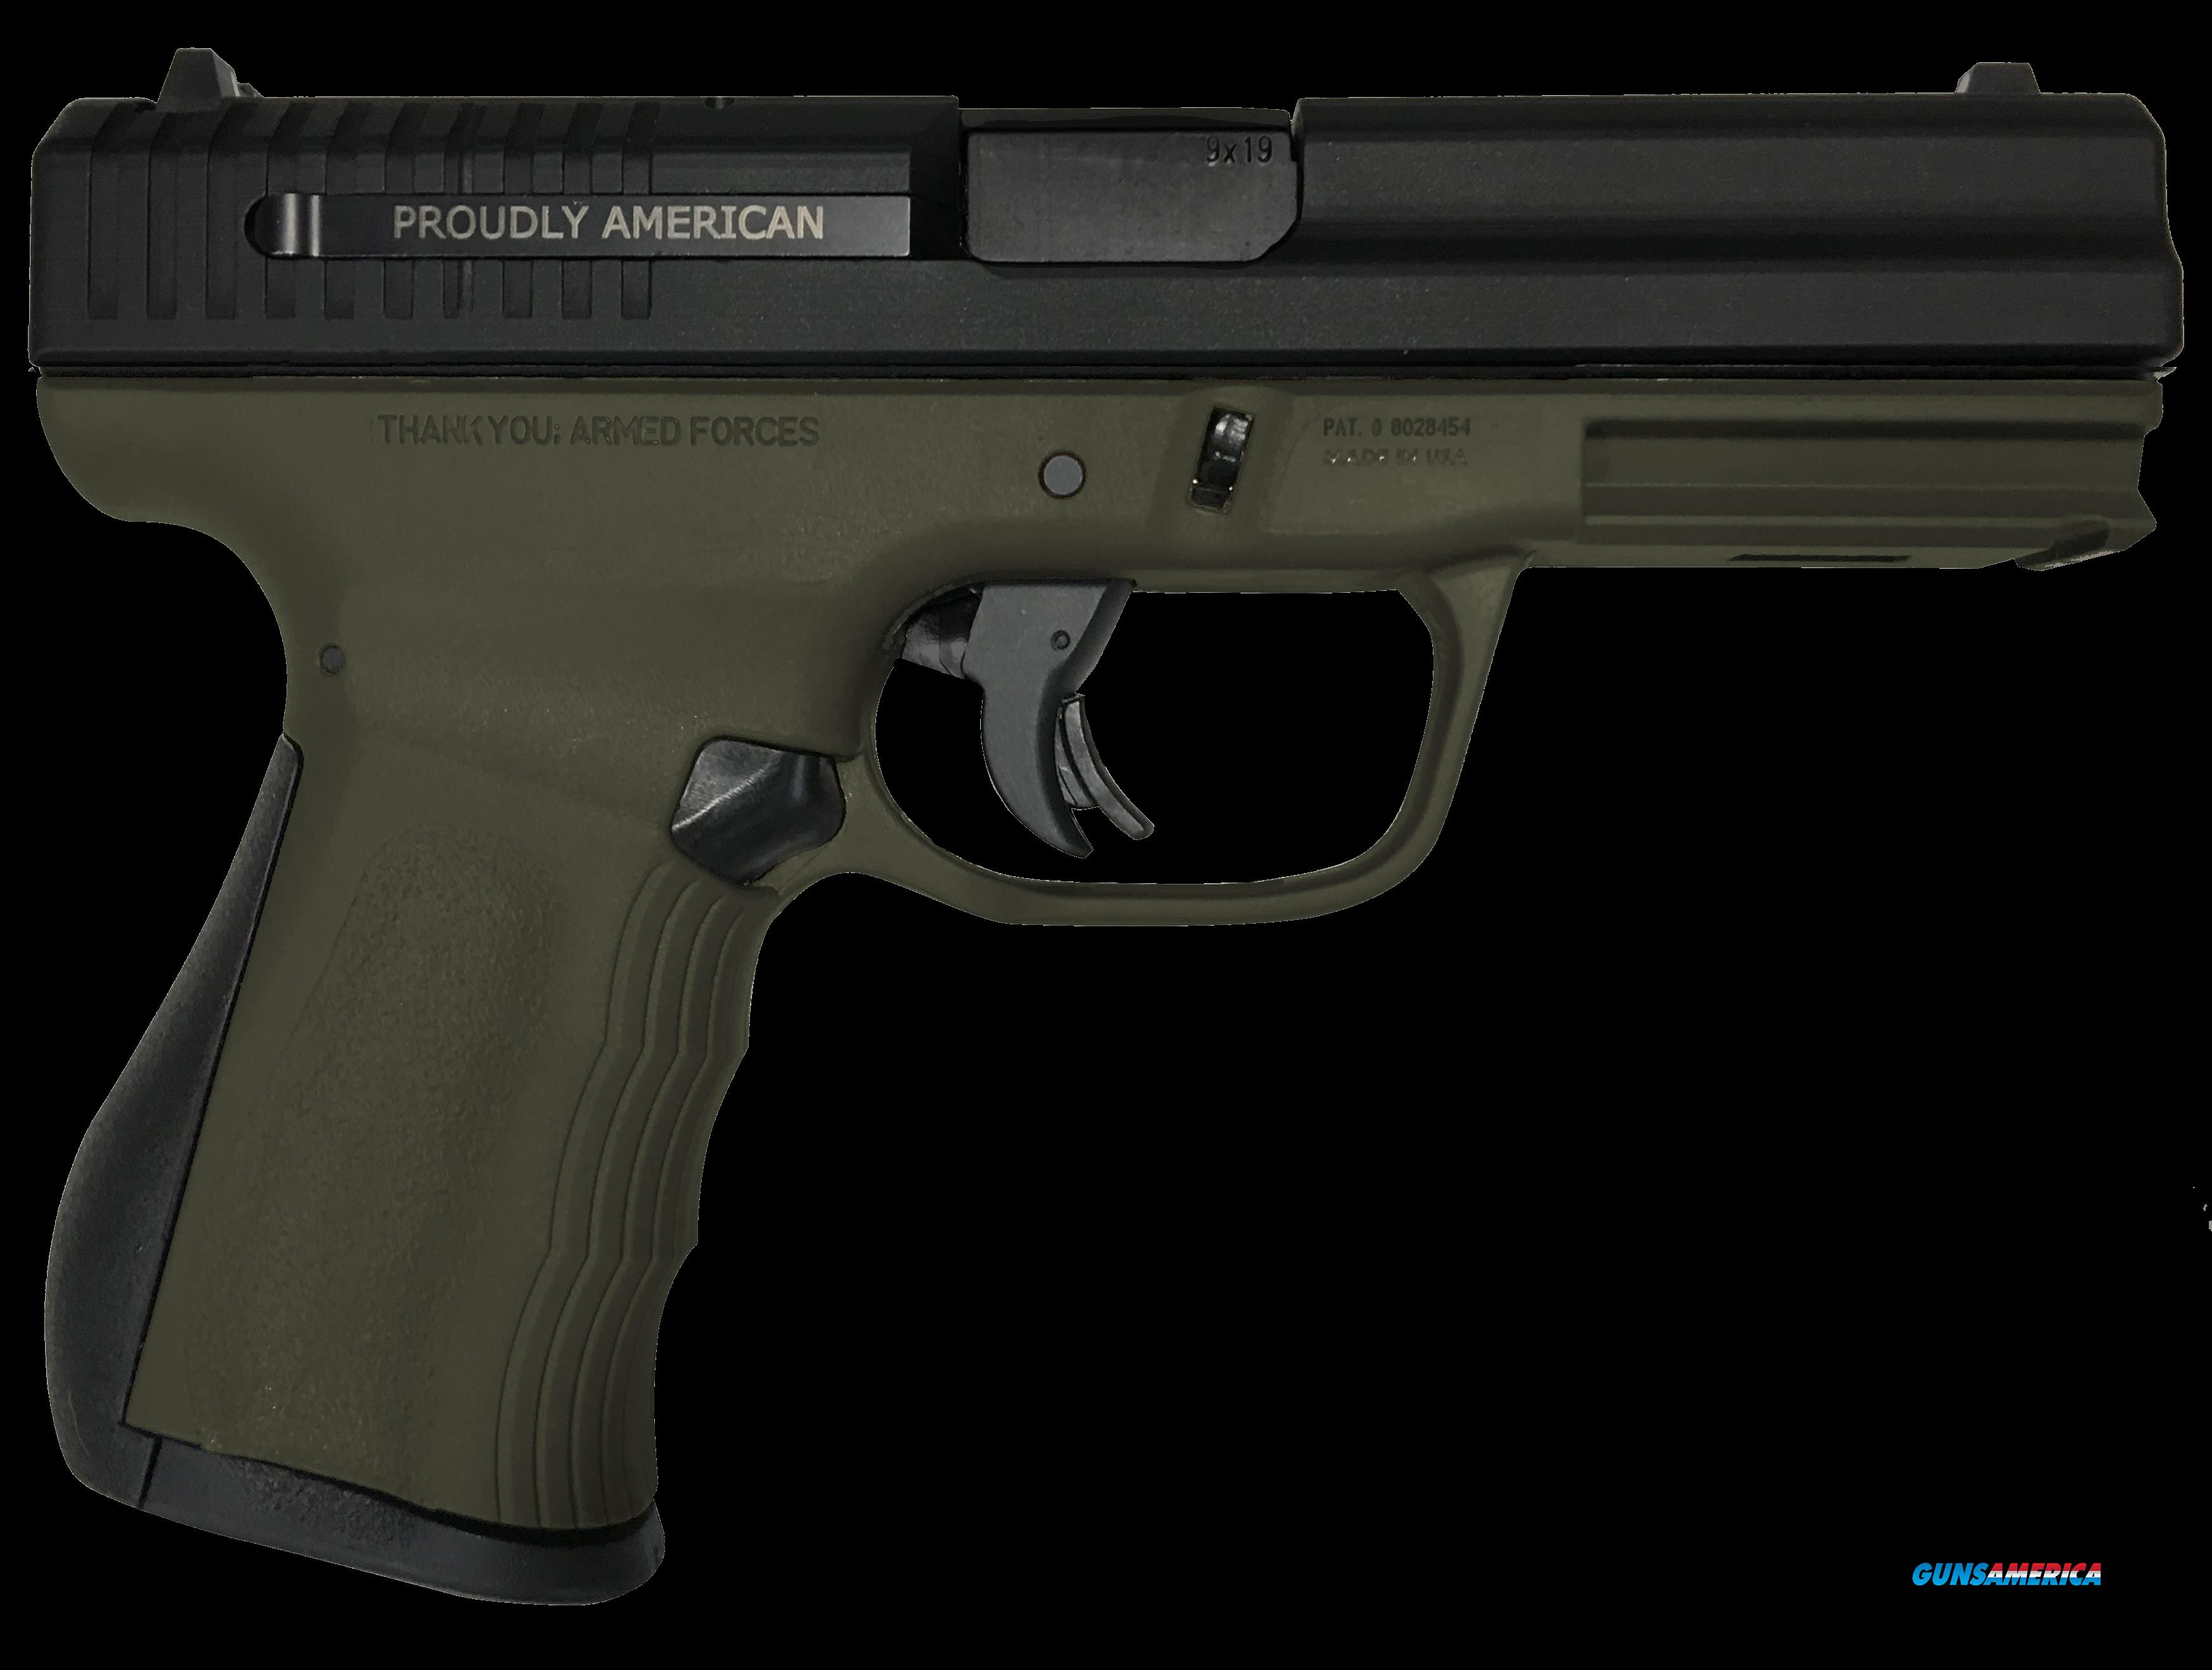 "FMK G9C1G2OD 9C1 G2 FAT Single 9mm Luger 4"" 14+1 OD Green Polymer Grip/Frame Black Carbon Steel  Guns > Pistols > FMK"